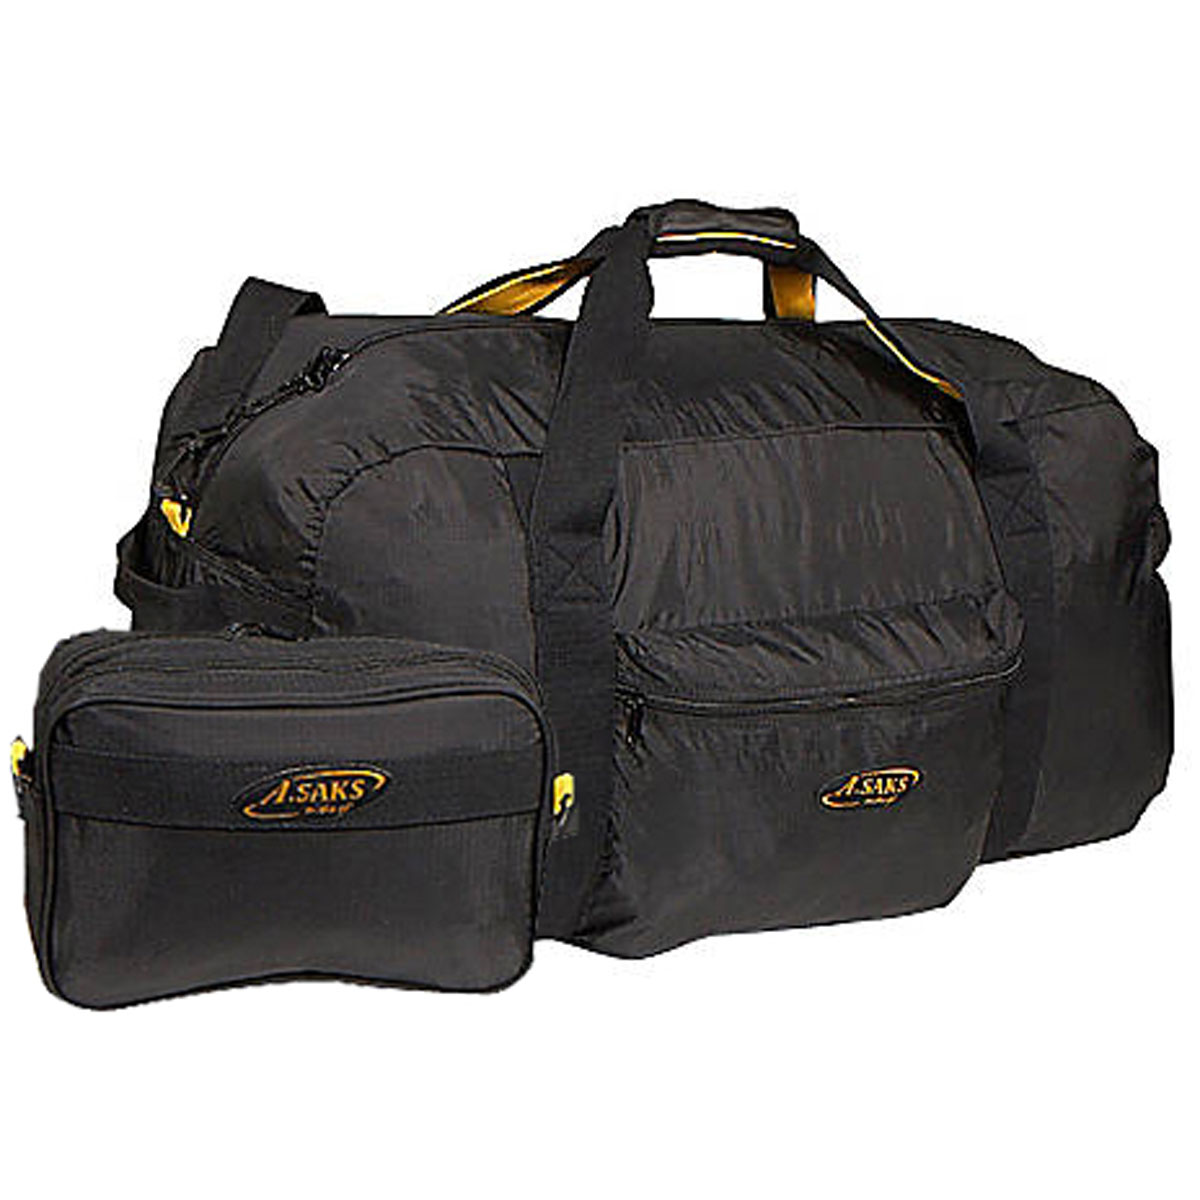 "Image of A. Saks 30"" Lightweight Folding Duffel Black - A. Saks Packable Bags"